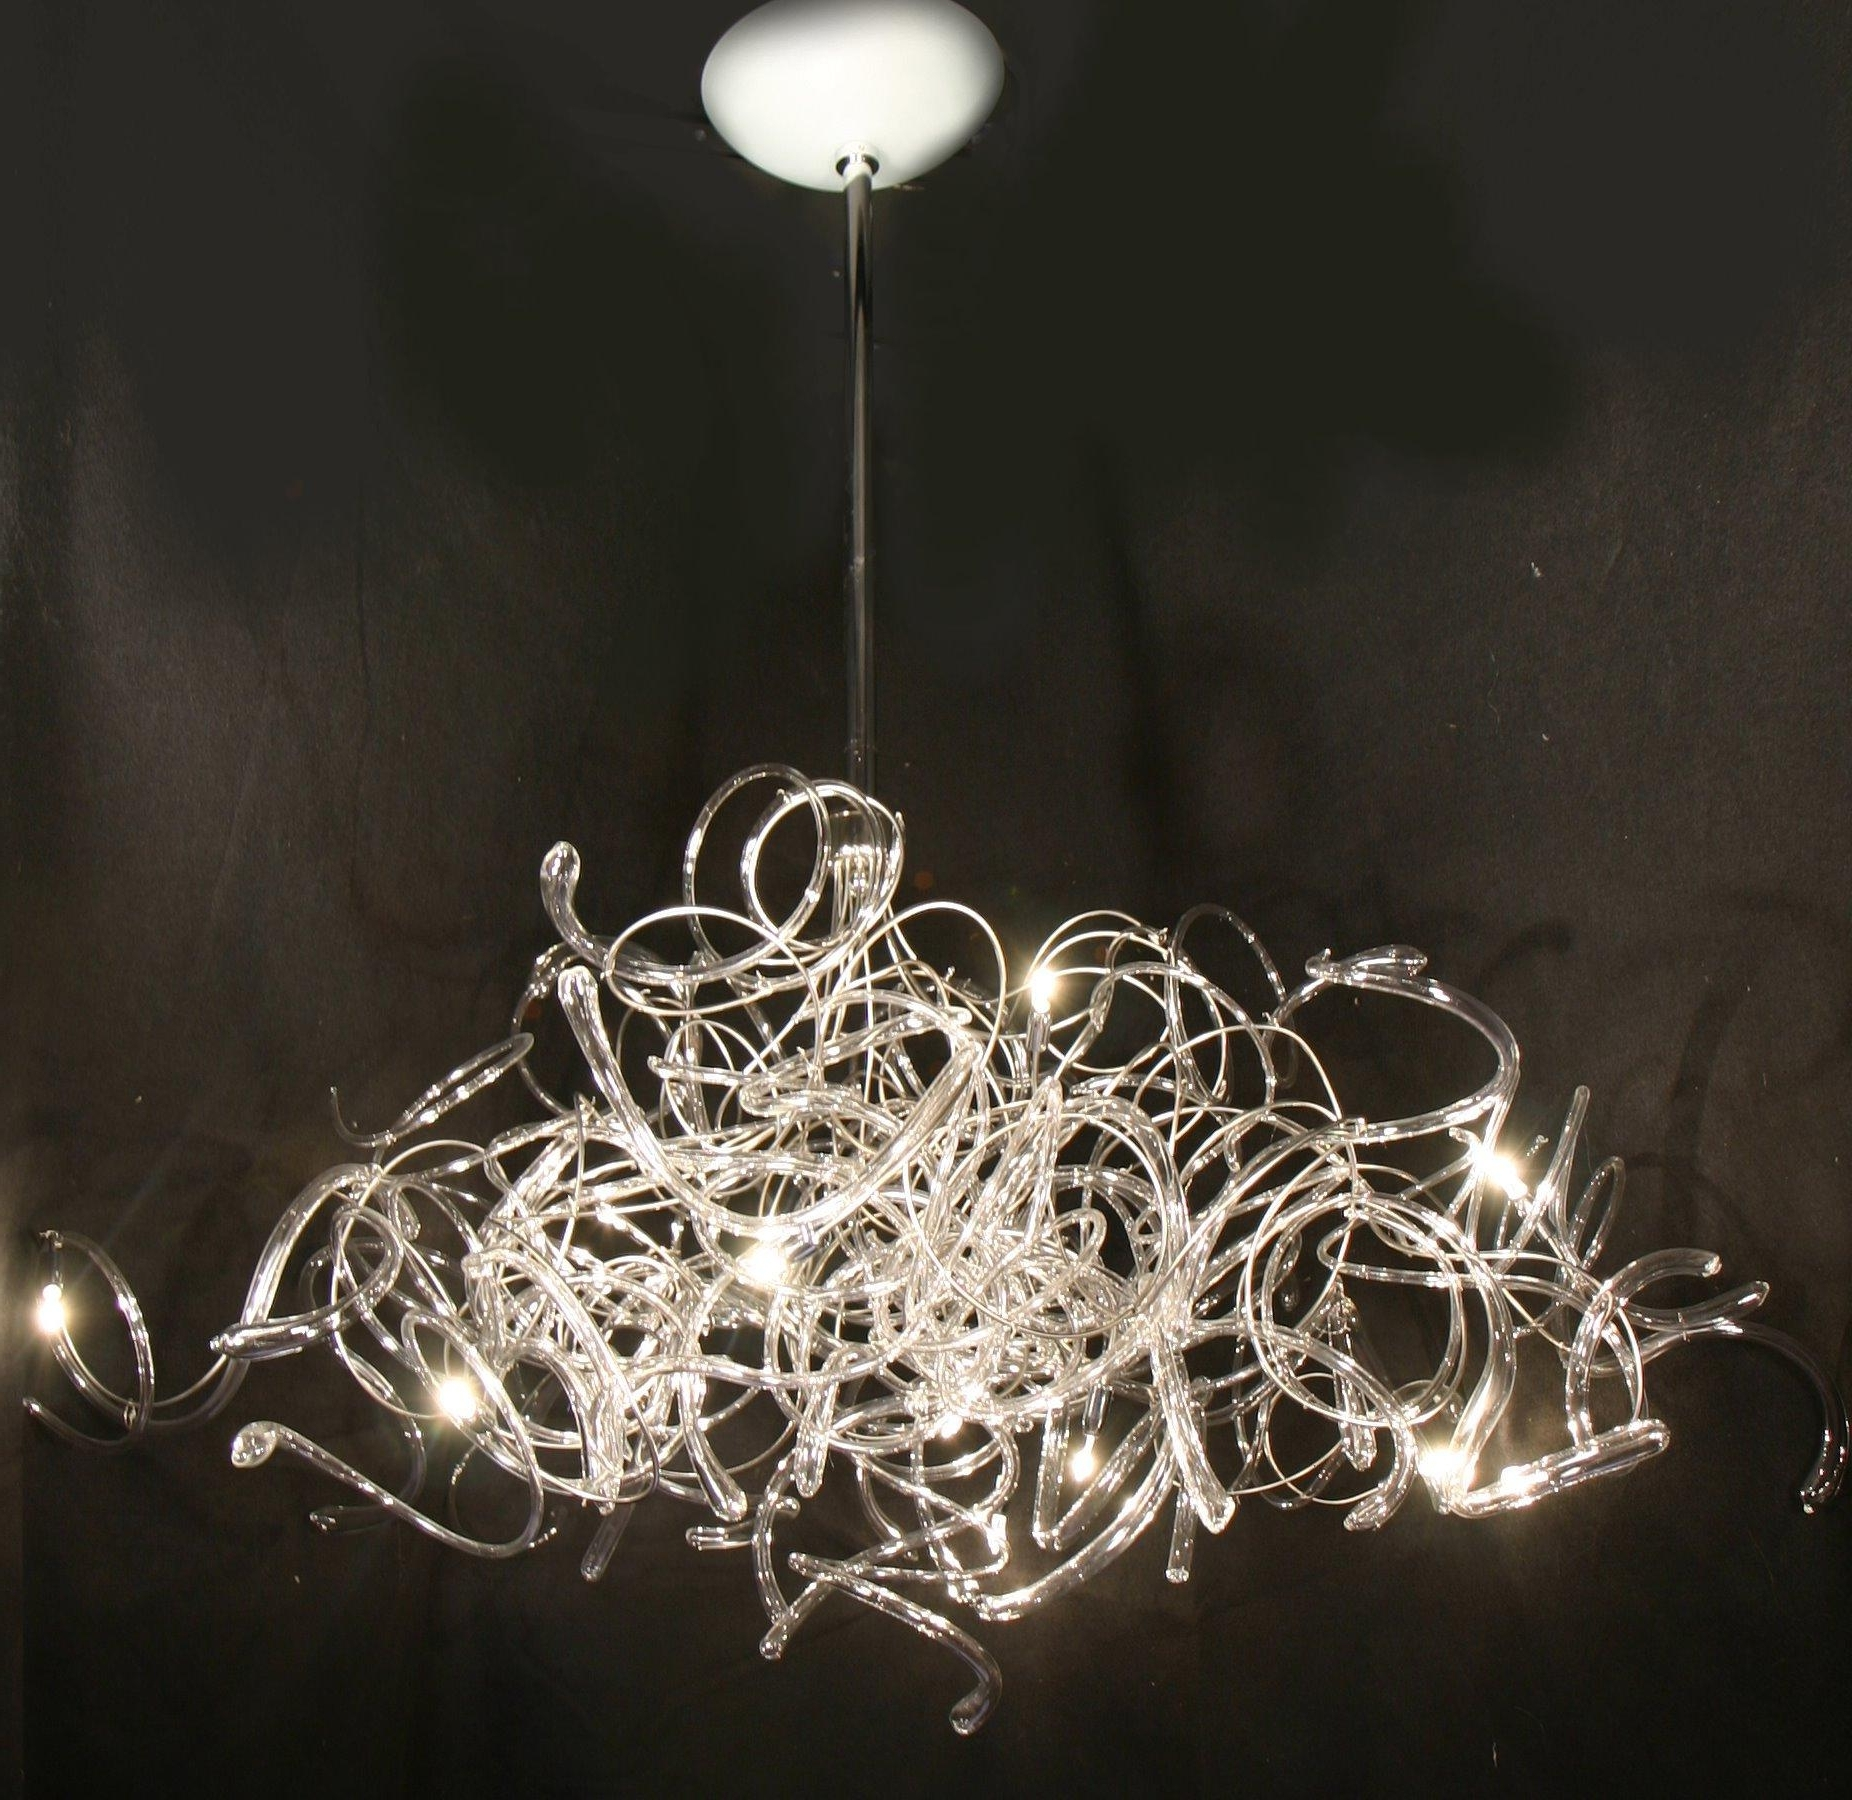 Contemporary Chandeliers Regarding Famous Chandeliers : Contemporary Chandelier Lighting Luxury Contemporary (View 3 of 15)